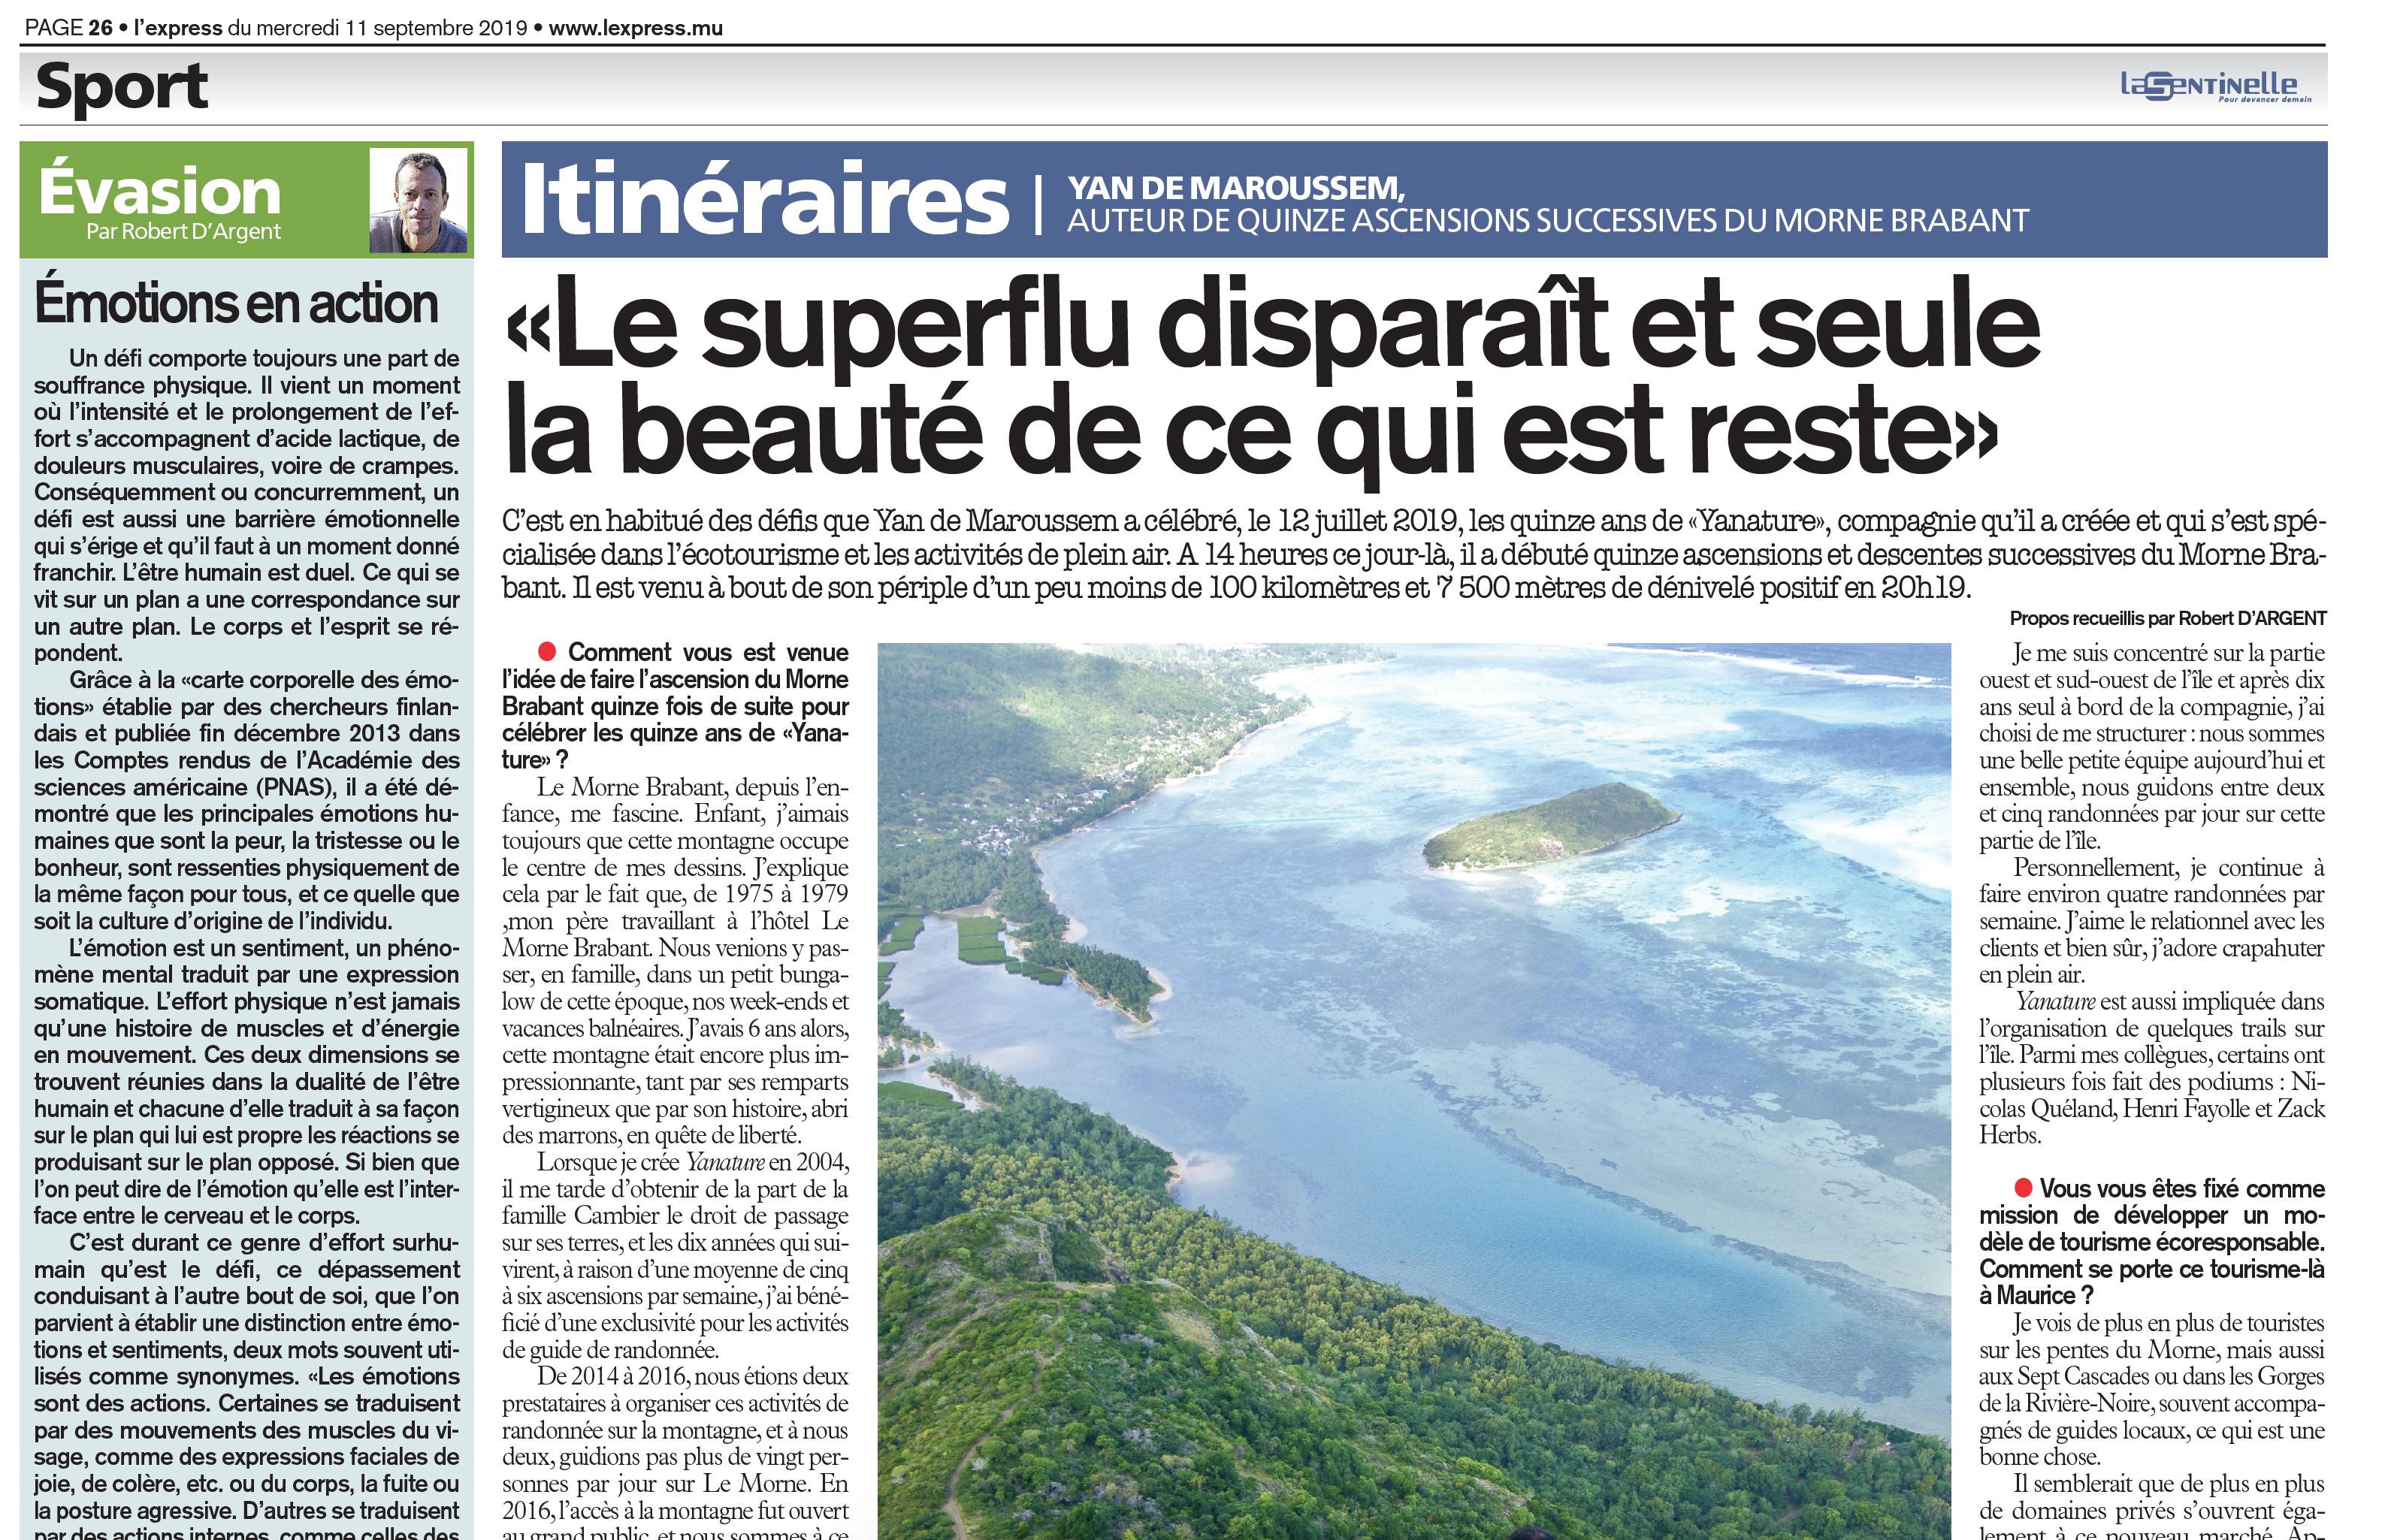 Interview From L'express about Yan de Maroussem 15 ascents of Le Morne Brabant